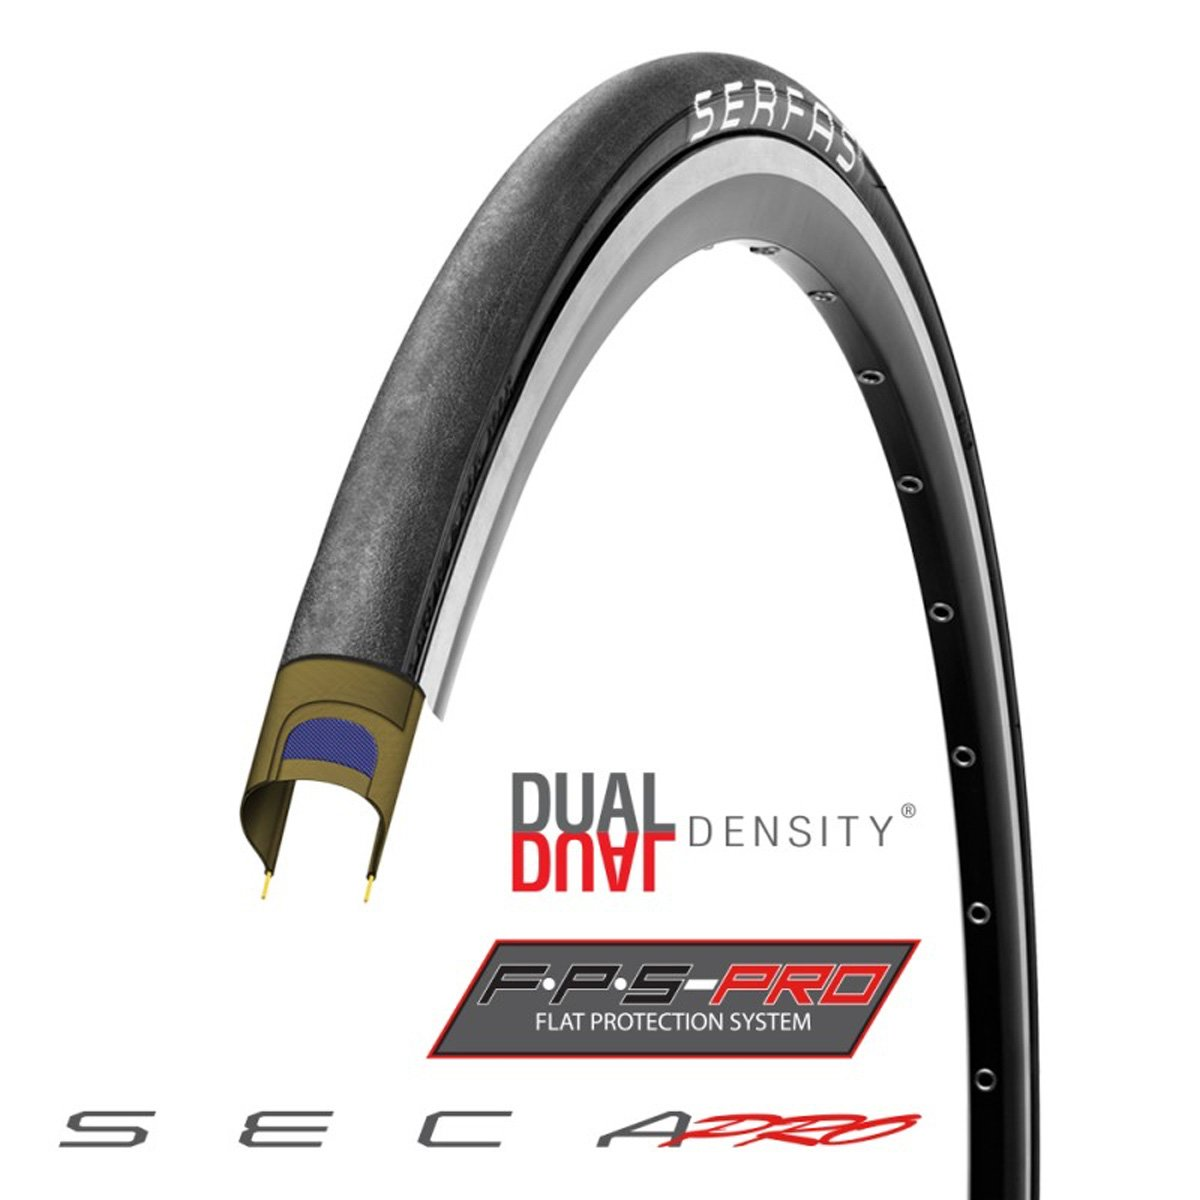 Serfas Seca Pro with Fps Folding Road Pro Tire